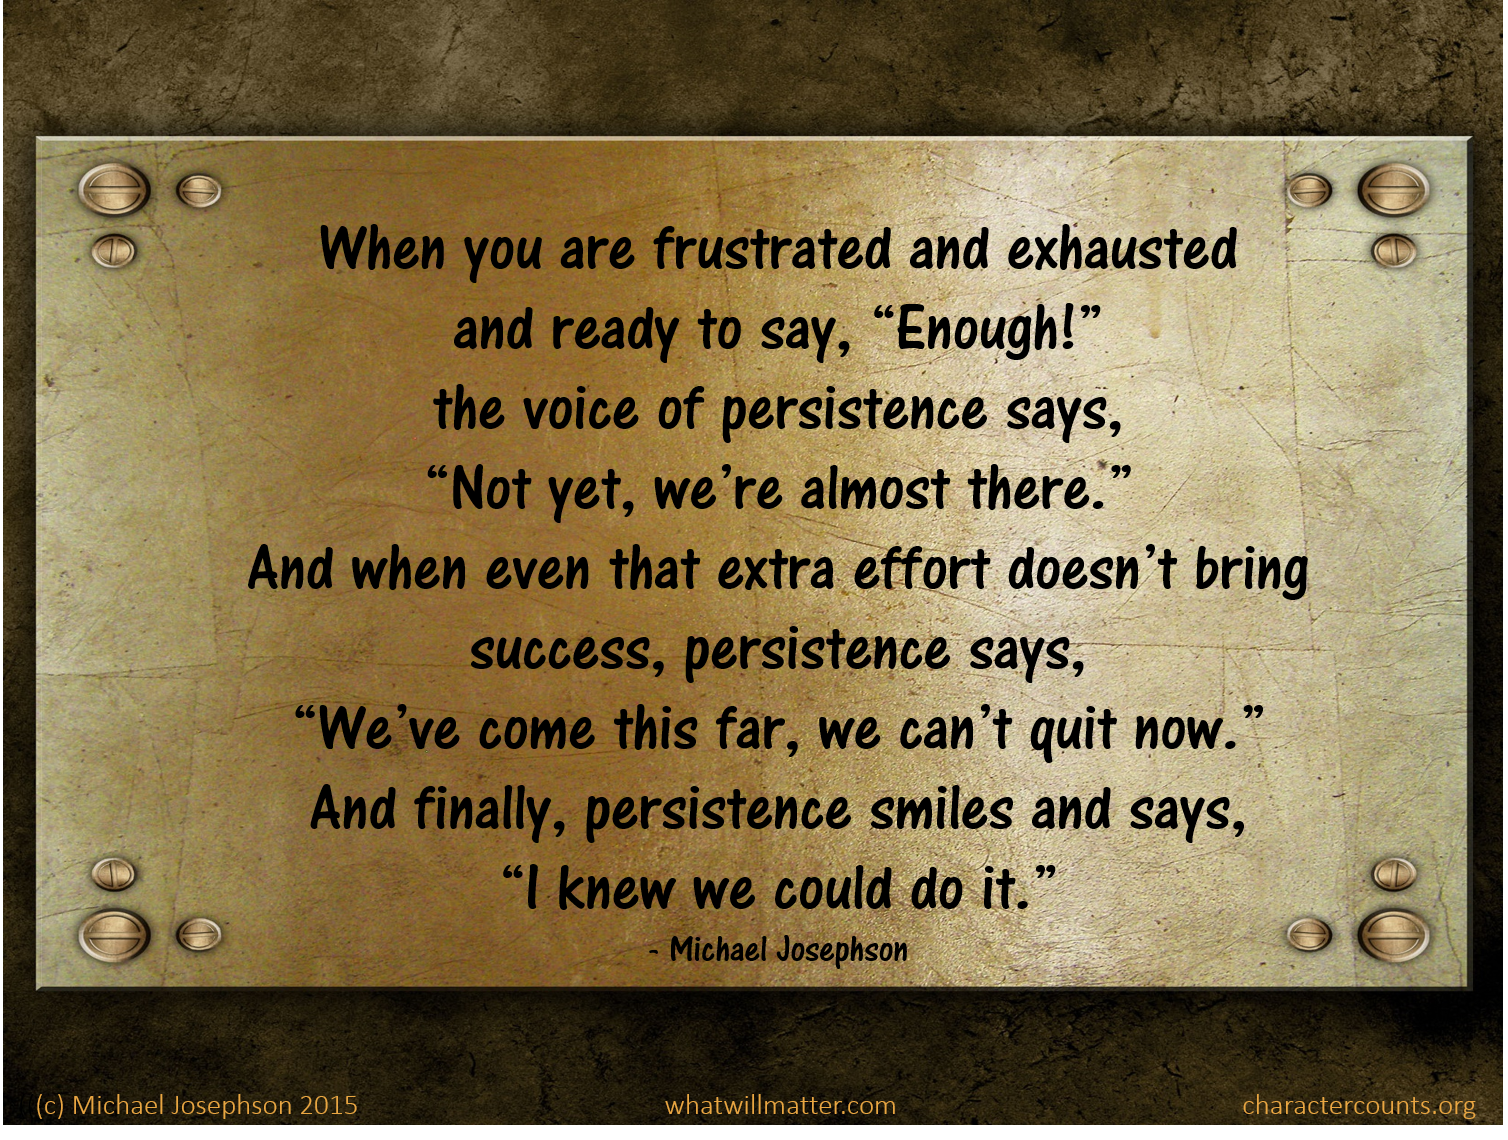 Perseverance Quotes: Persistence And Perseverance Quotes. QuotesGram